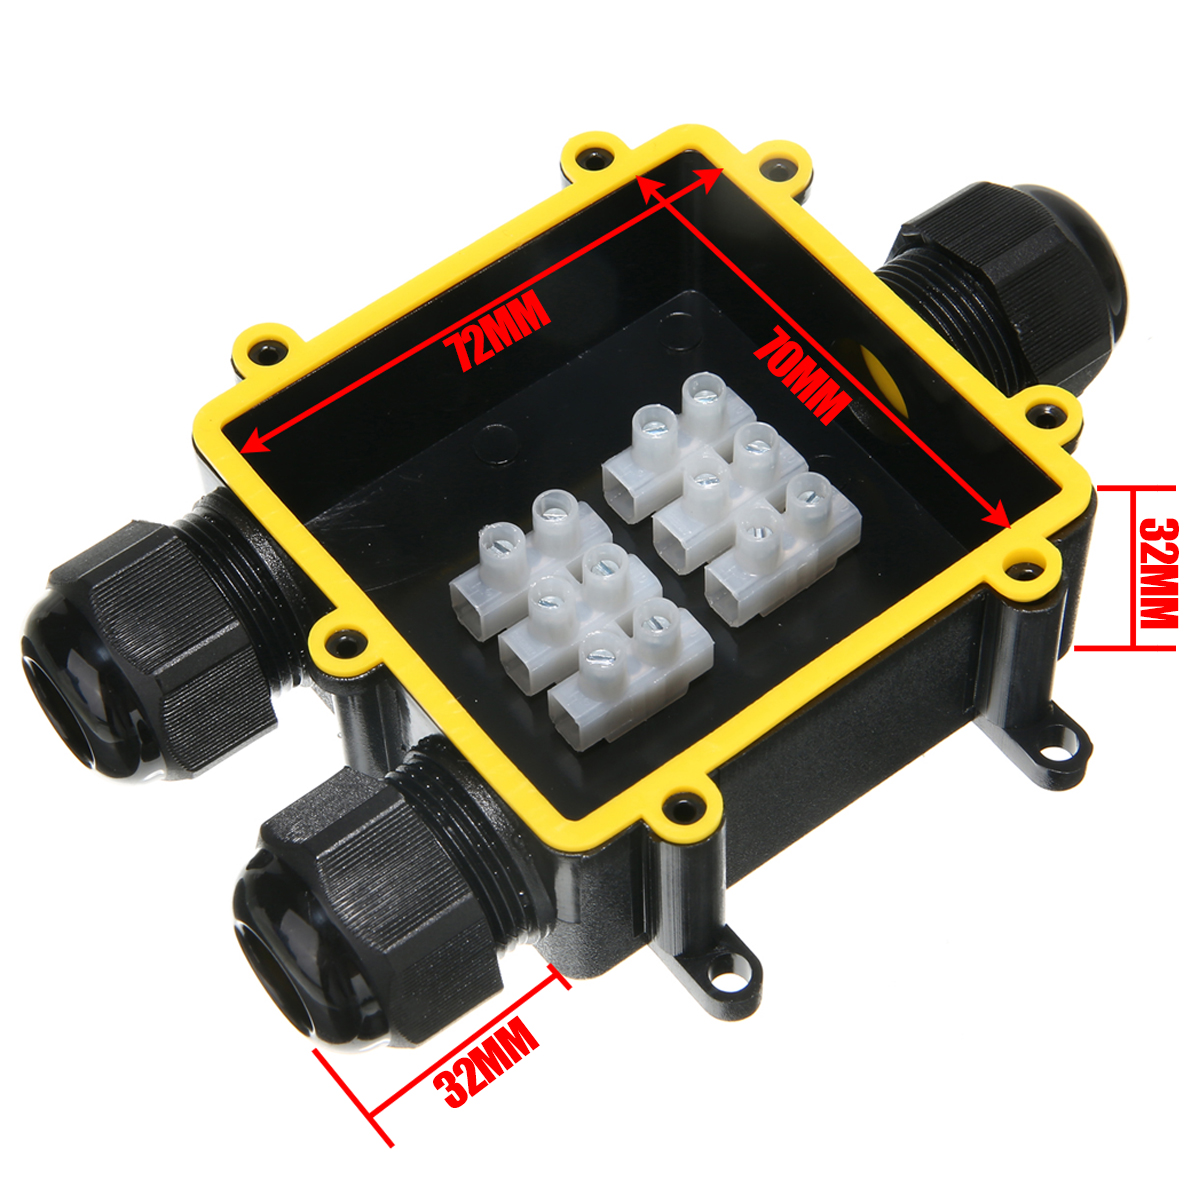 1pc Outdoor External Junction Box 3 Way Plastic Waterproof Electrical Junction Box Cable Wire Connector IP68 Distribution Case